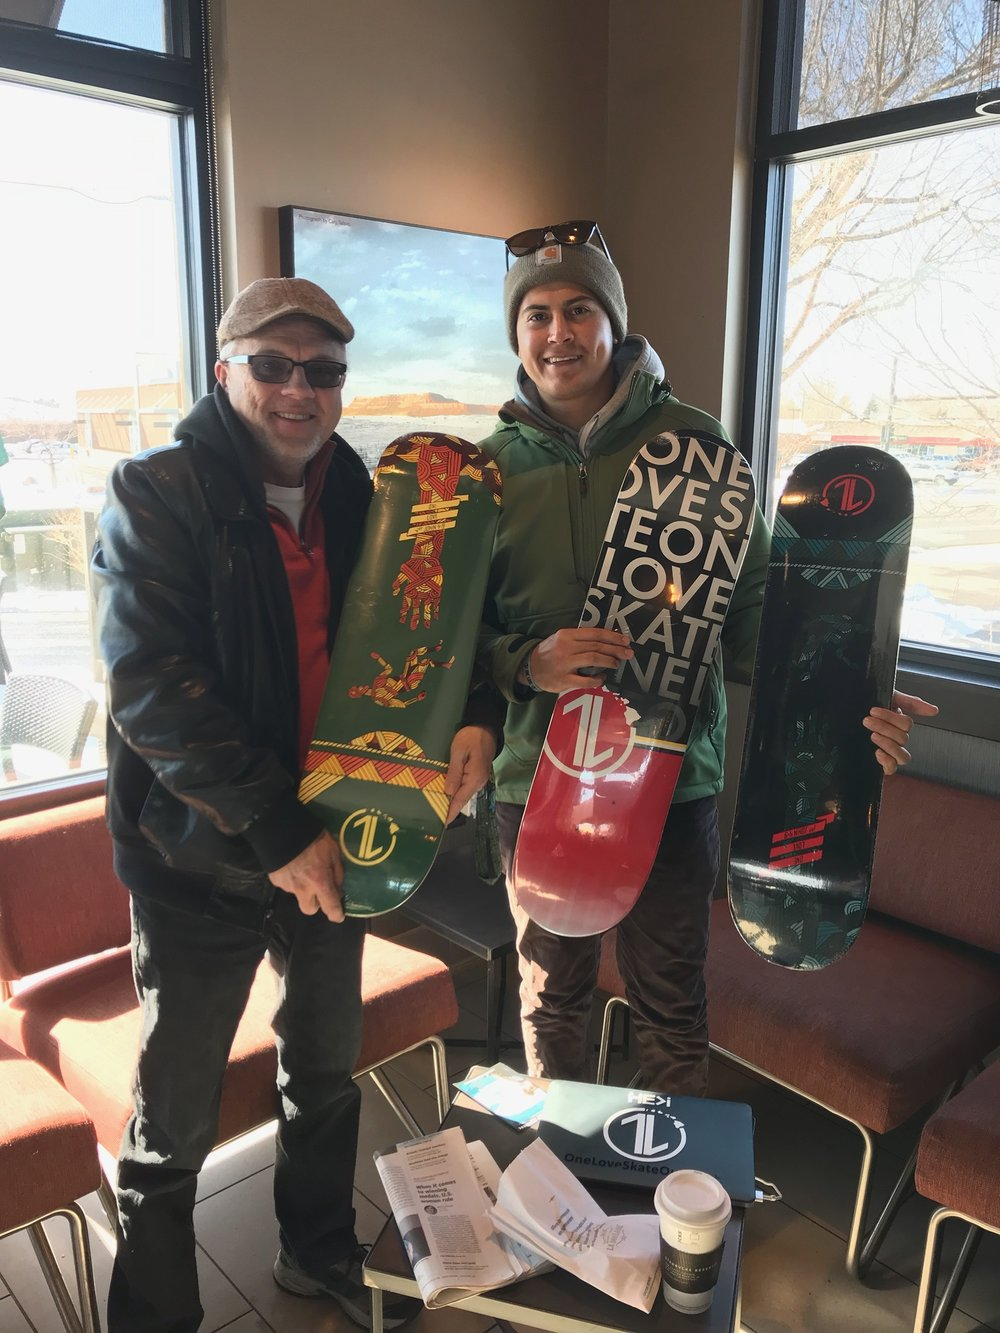 Auburn with his pastor at Harvest Church in Wyoming and the latest One Love Skate decks. Joshua & Auburn are planning to share about One Love Skate at Harvest Church in a couple weeks.